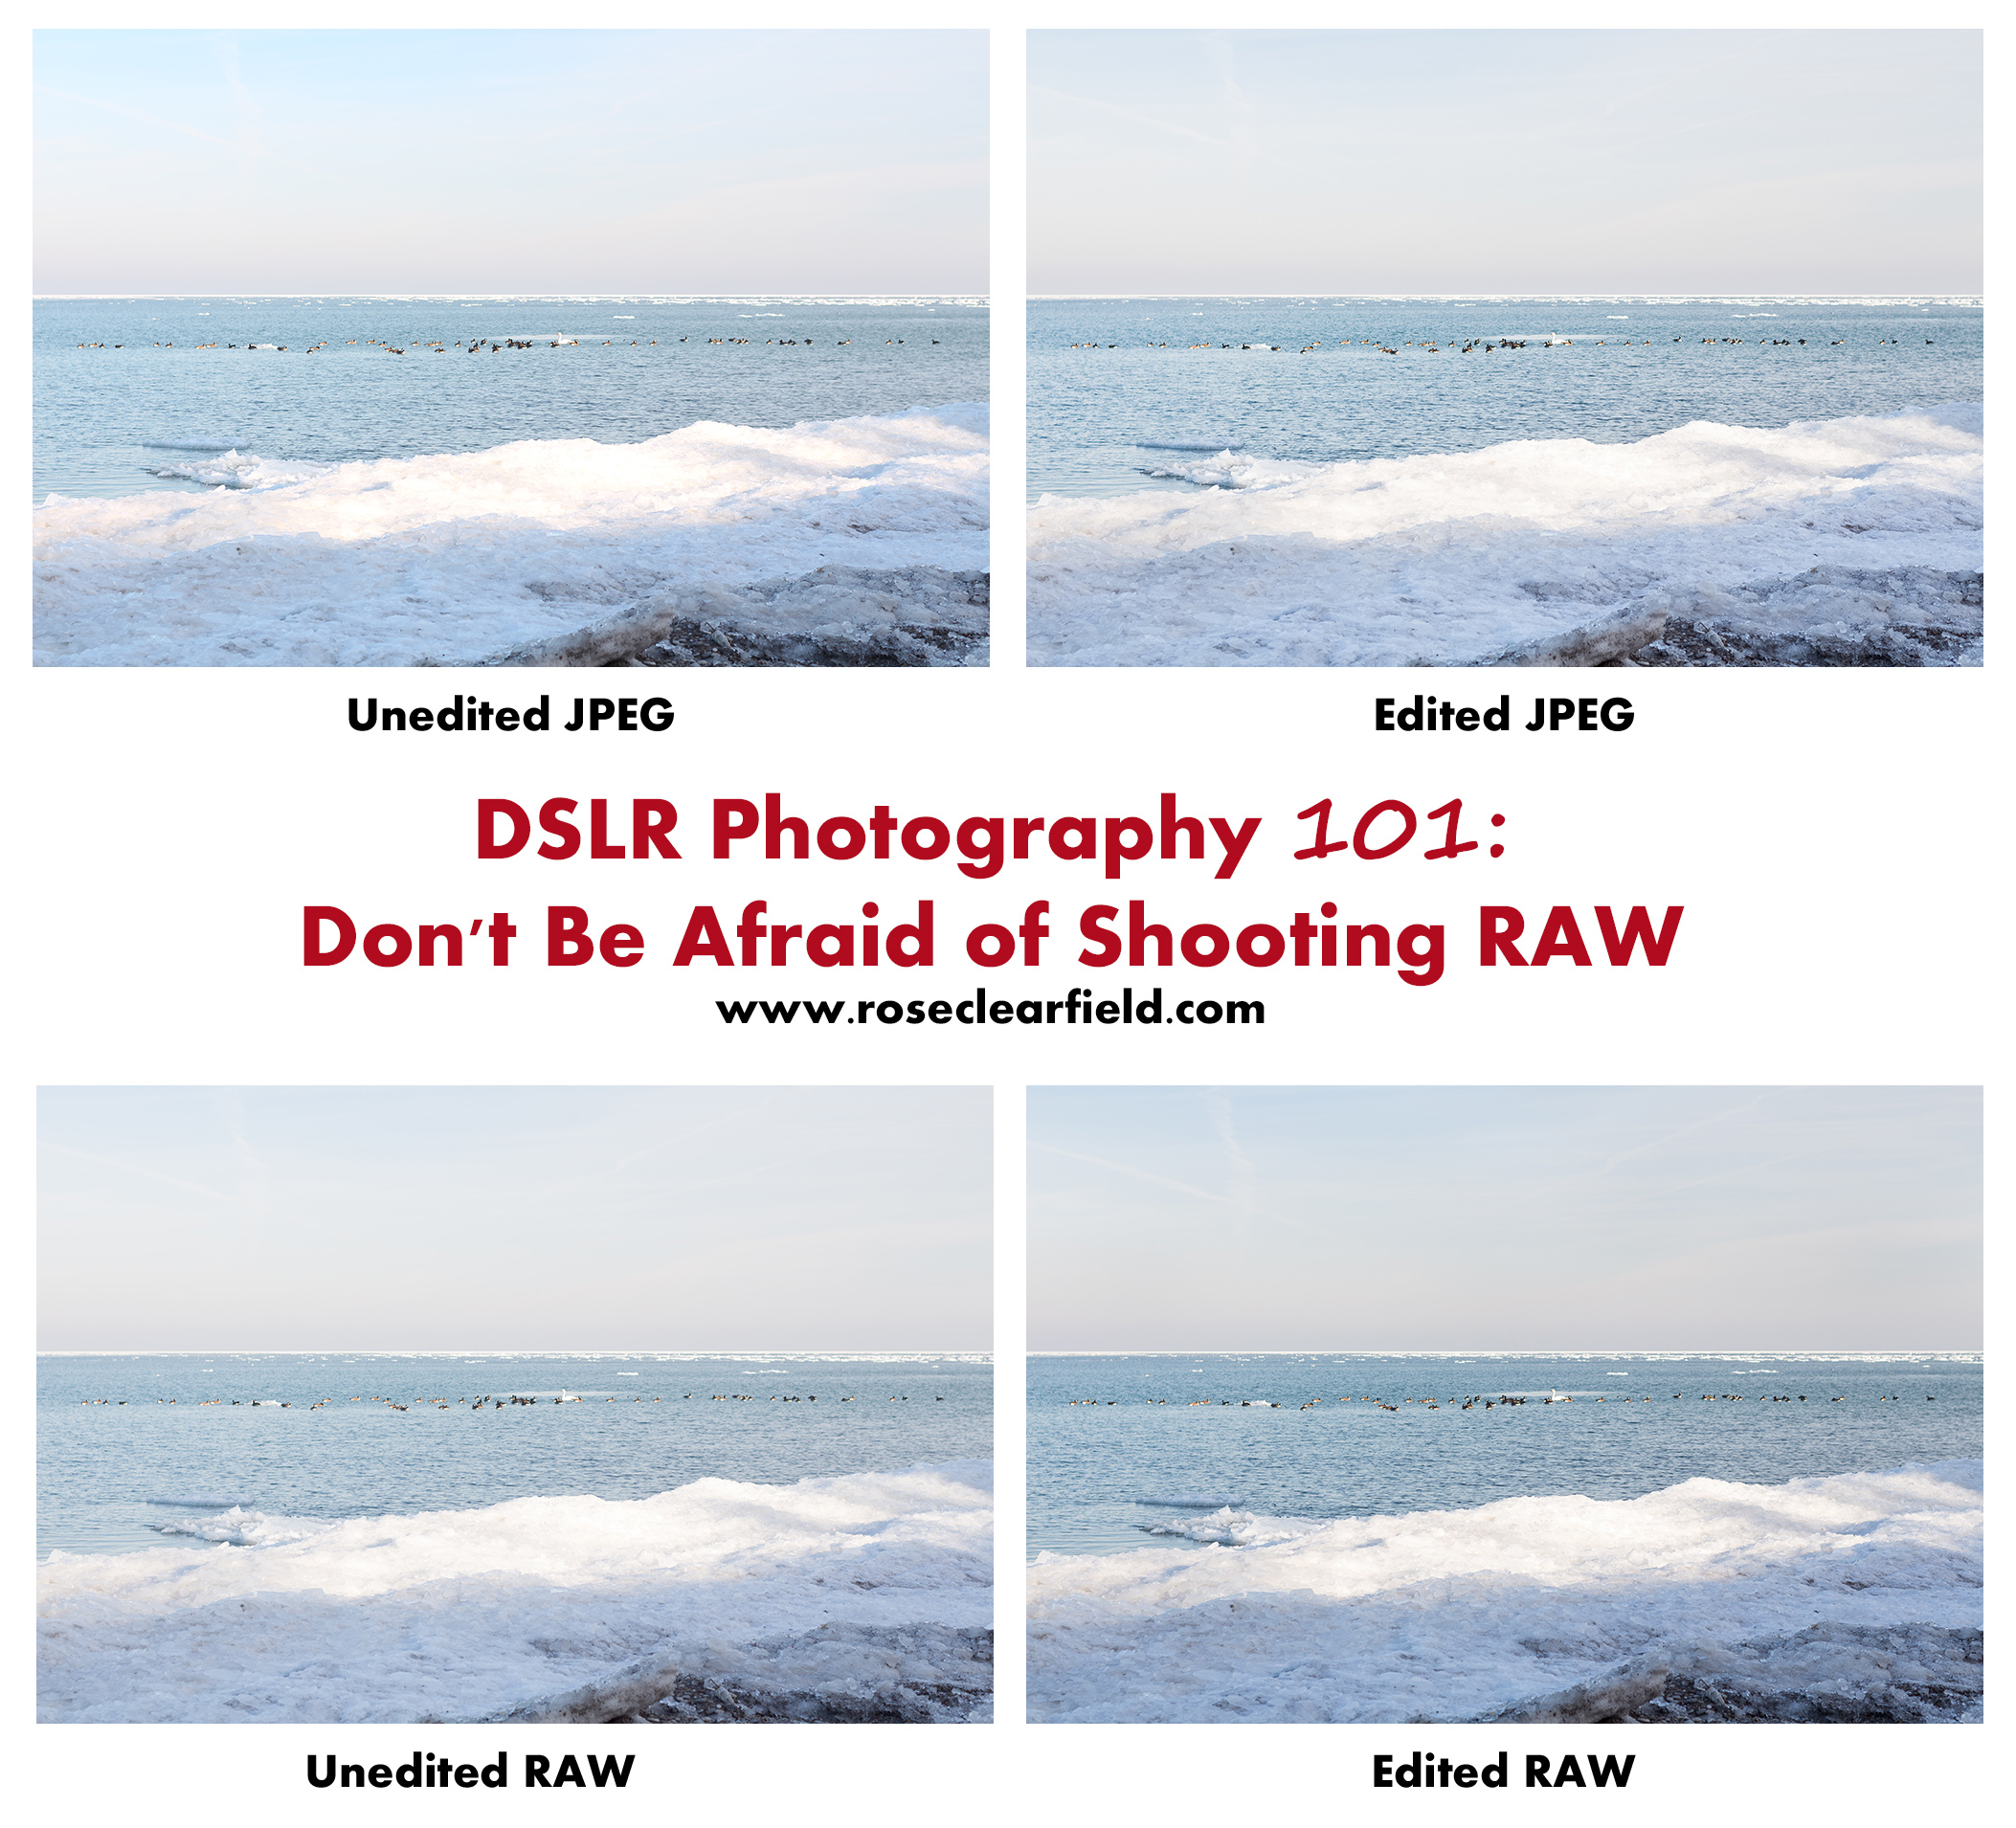 DSLR Photography 101: Don't Be Afraid of Shooting RAW | https://www.roseclearfield.com